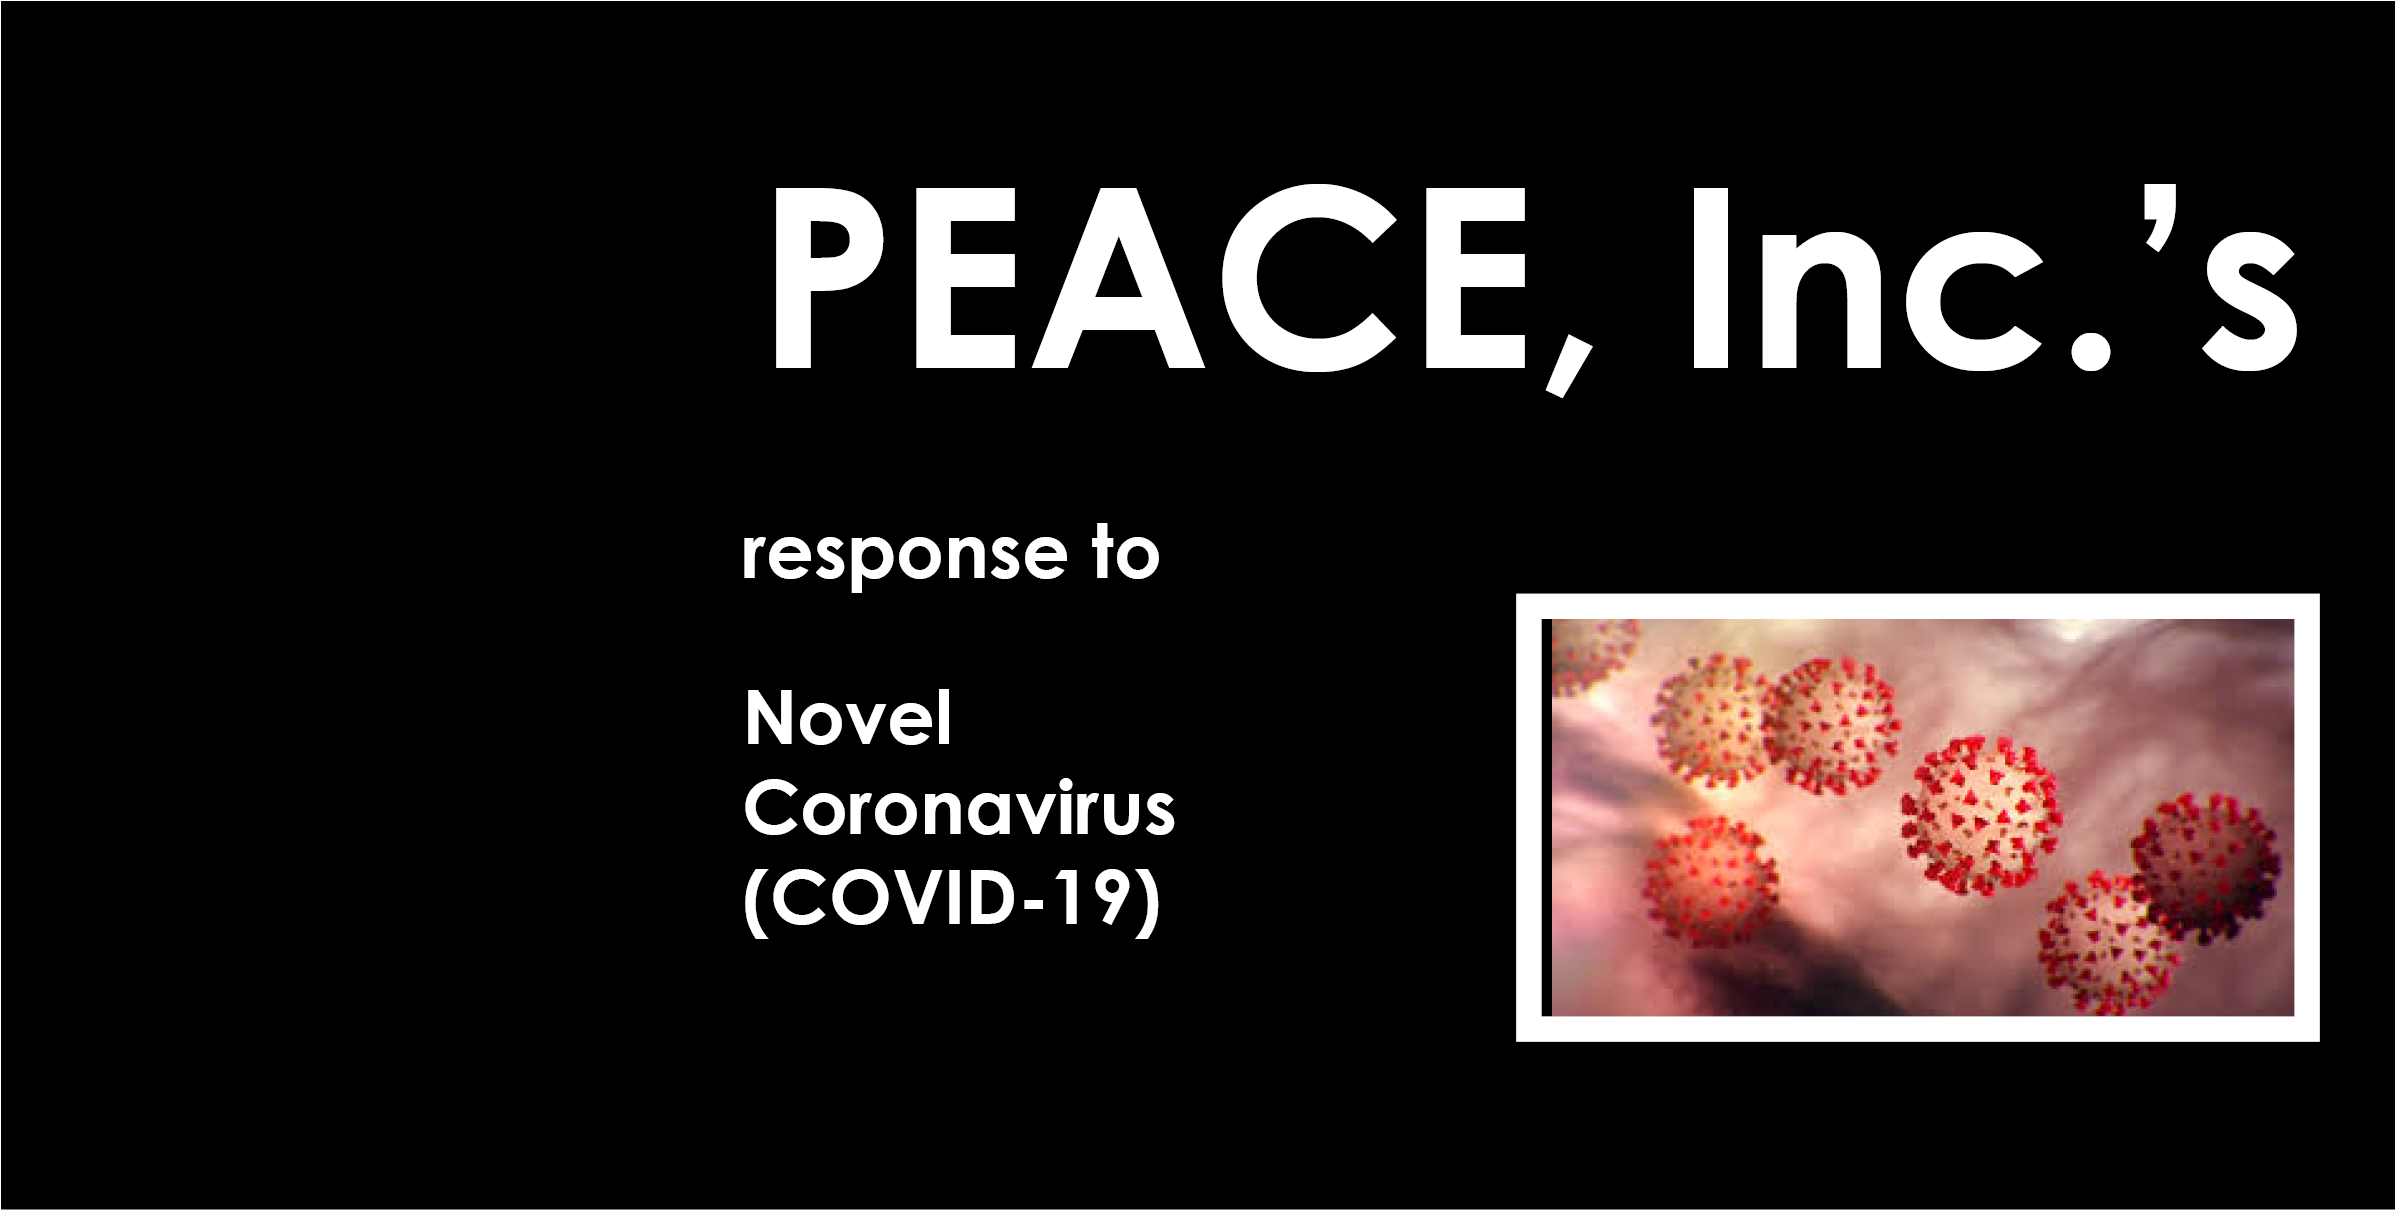 PEACE, Inc.'s response to COVID-19